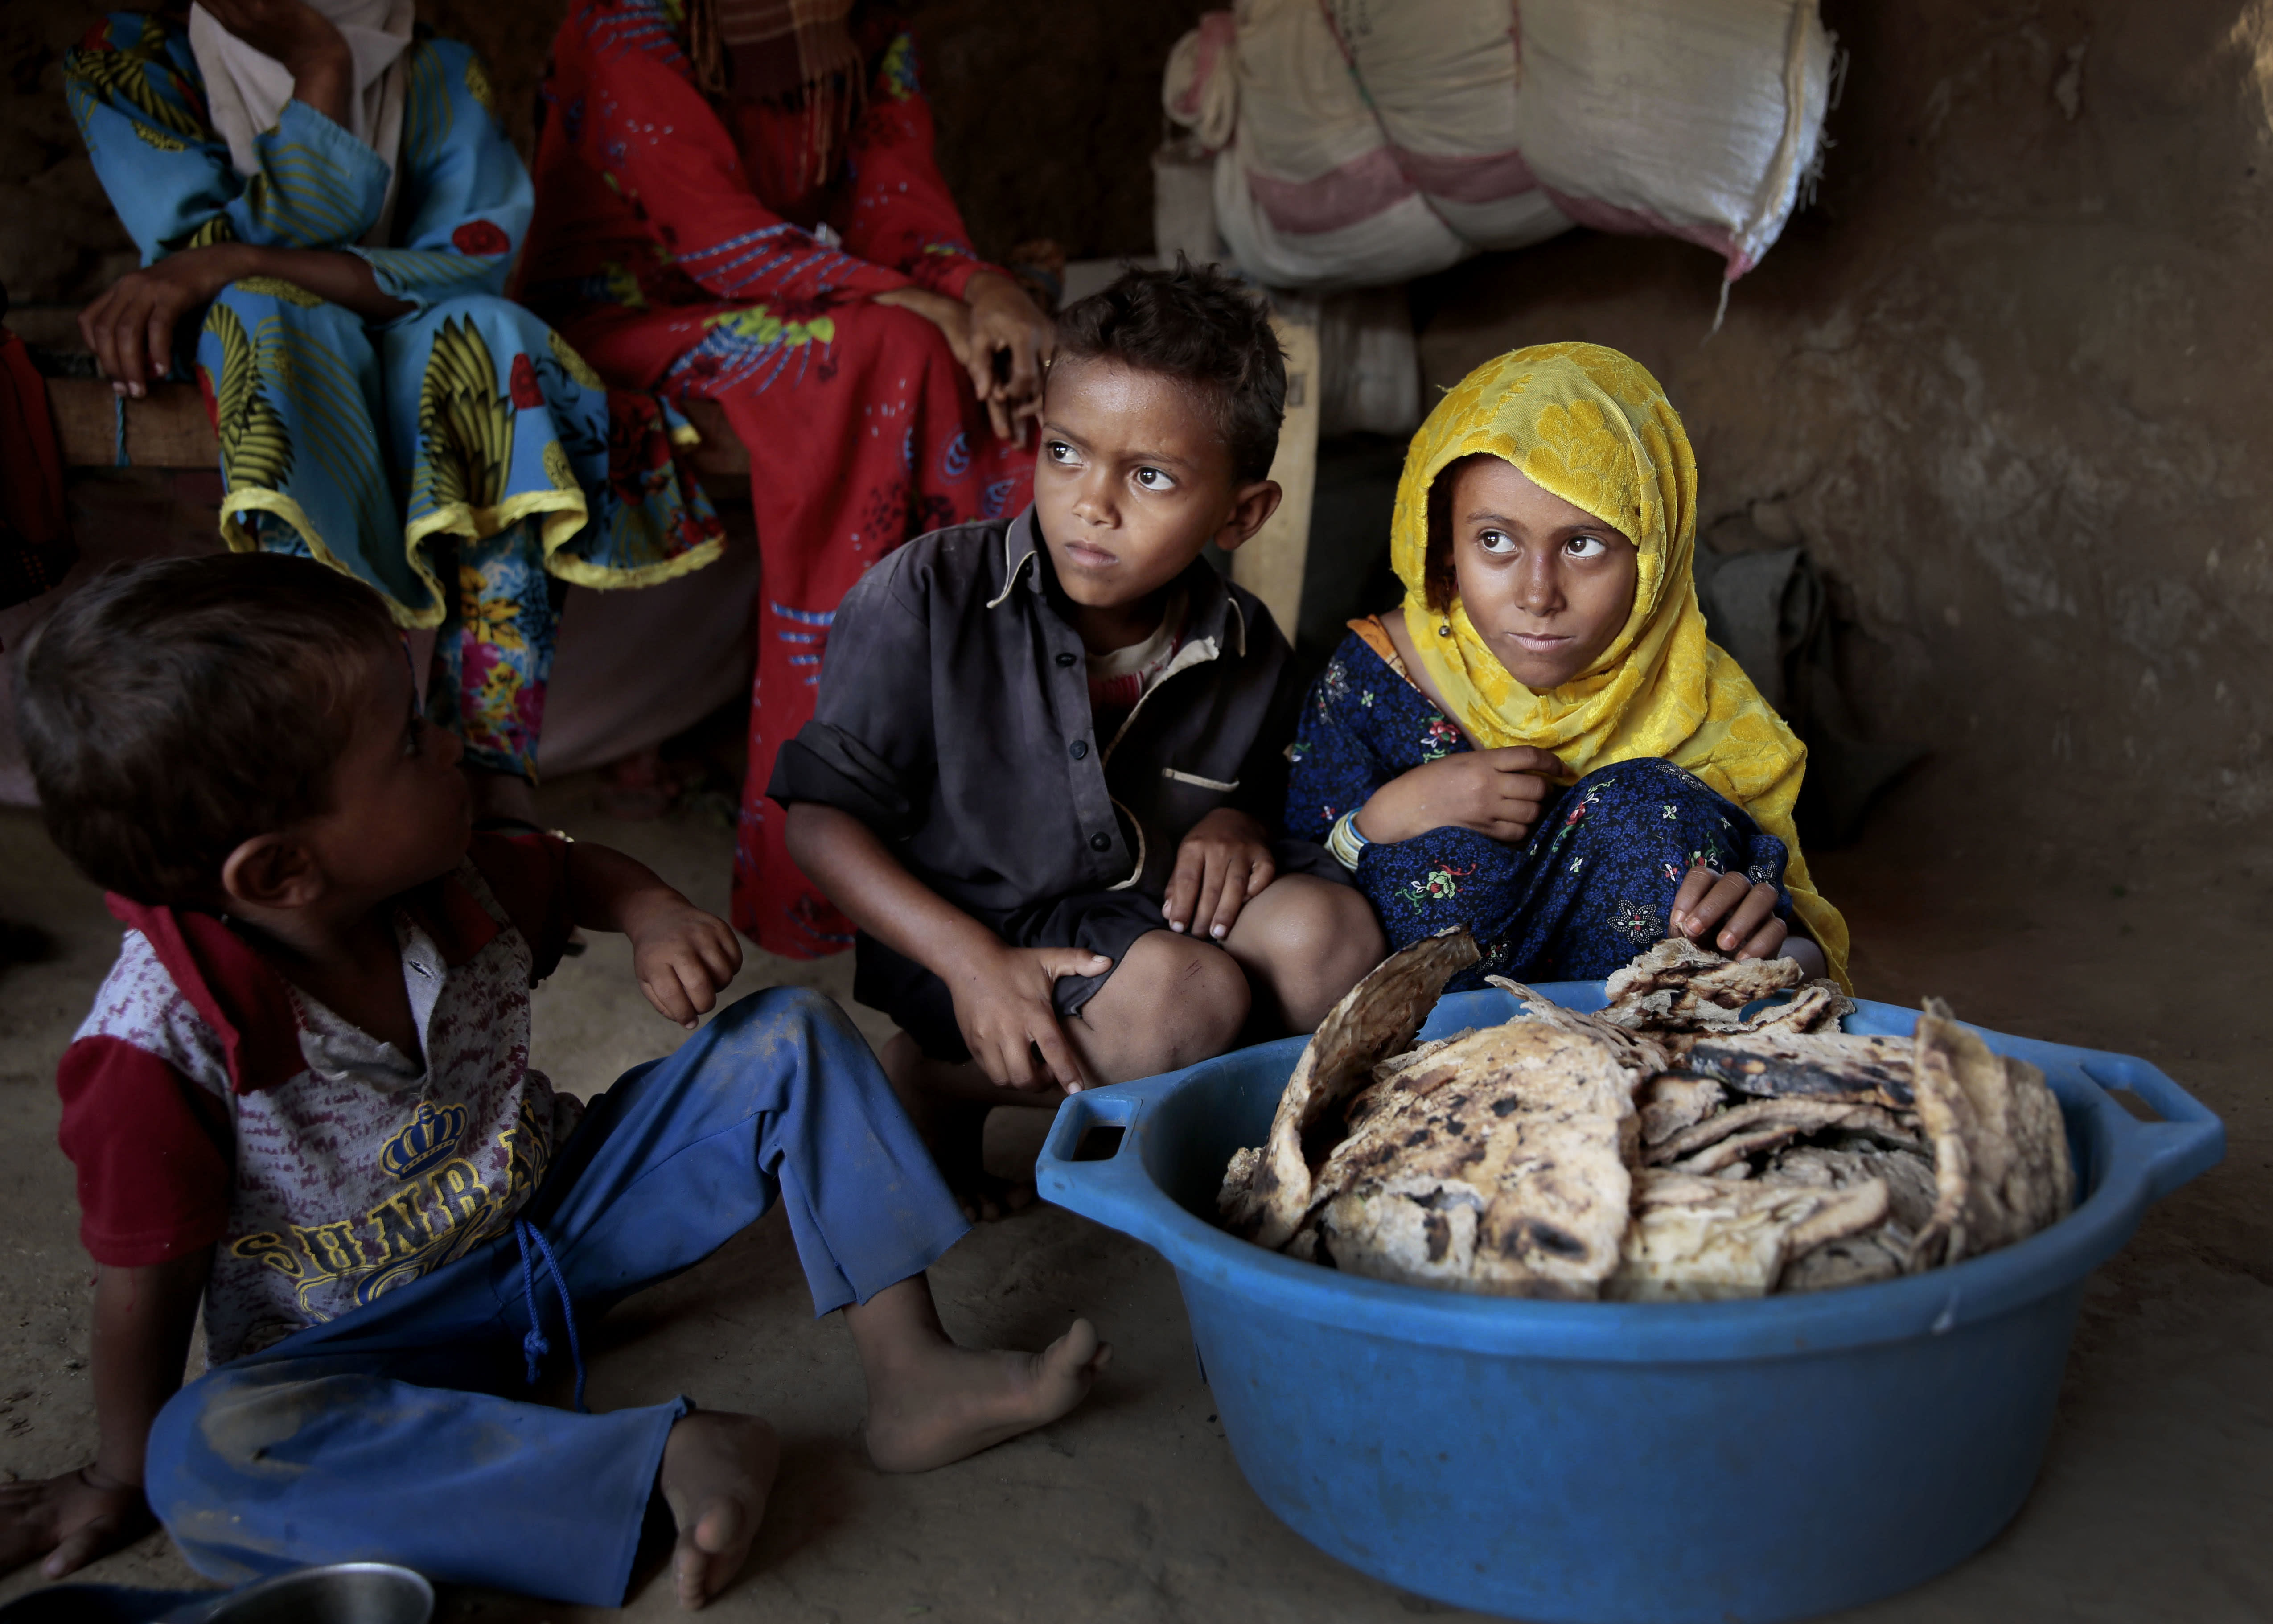 """FILE - In this Oct. 1, 2018 file photo, children sit in front of moldy bread in their shelter, in Aslam, Hajjah, Yemen. The U.N. children's agency says that millions of Yemeni children could be pushed to """"the brink of starvation"""" as the coronavirus pandemic sweeps across the war-torn Arab country amid a huge drop in humanitarian aid funding. UNICEF on Friday, June 26, 2020 released a new report, """"Yemen five years on: Children, conflict and COVID-19."""" (AP Photo/Hani Mohammed, File)"""